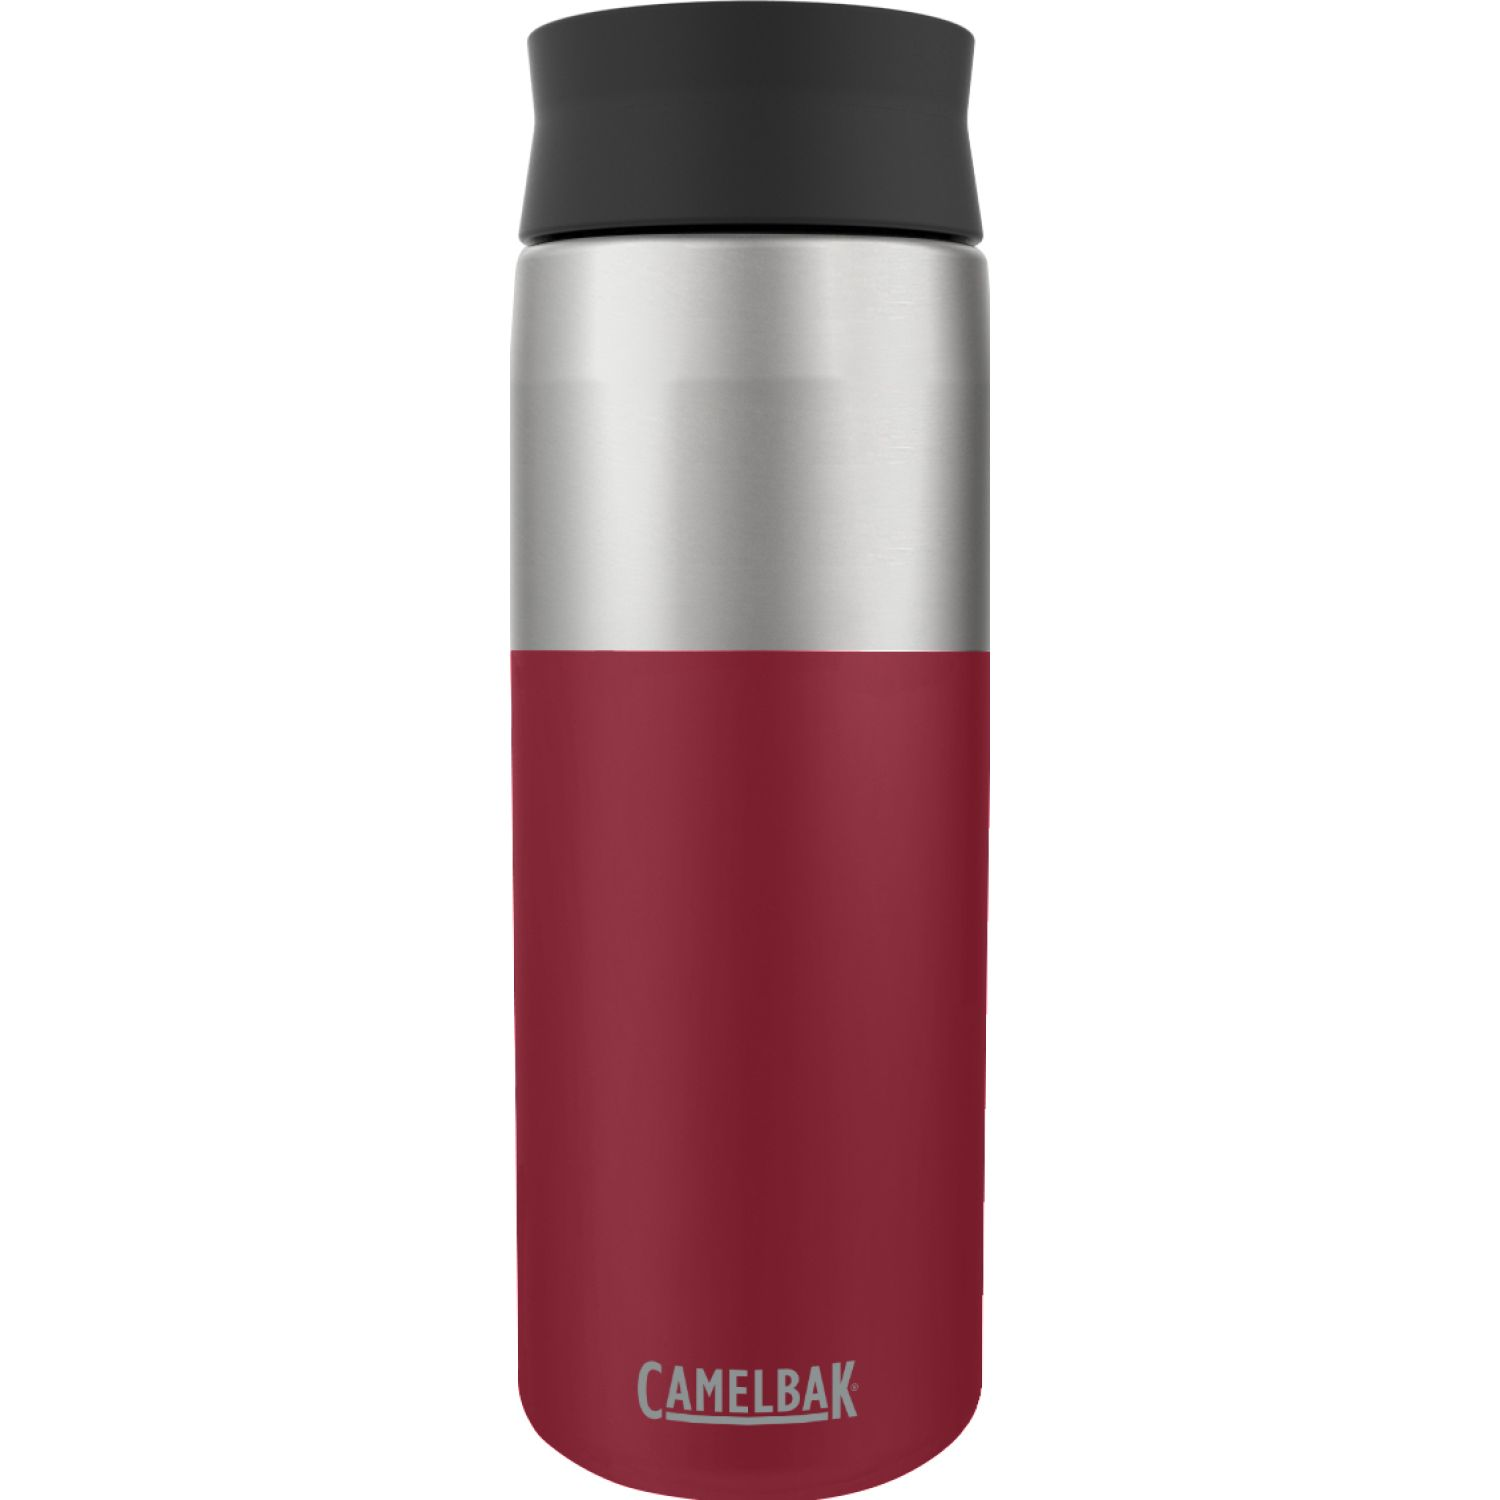 CAMELBAK hot cap vacuum stainless .6l Burgundy Botellas de agua